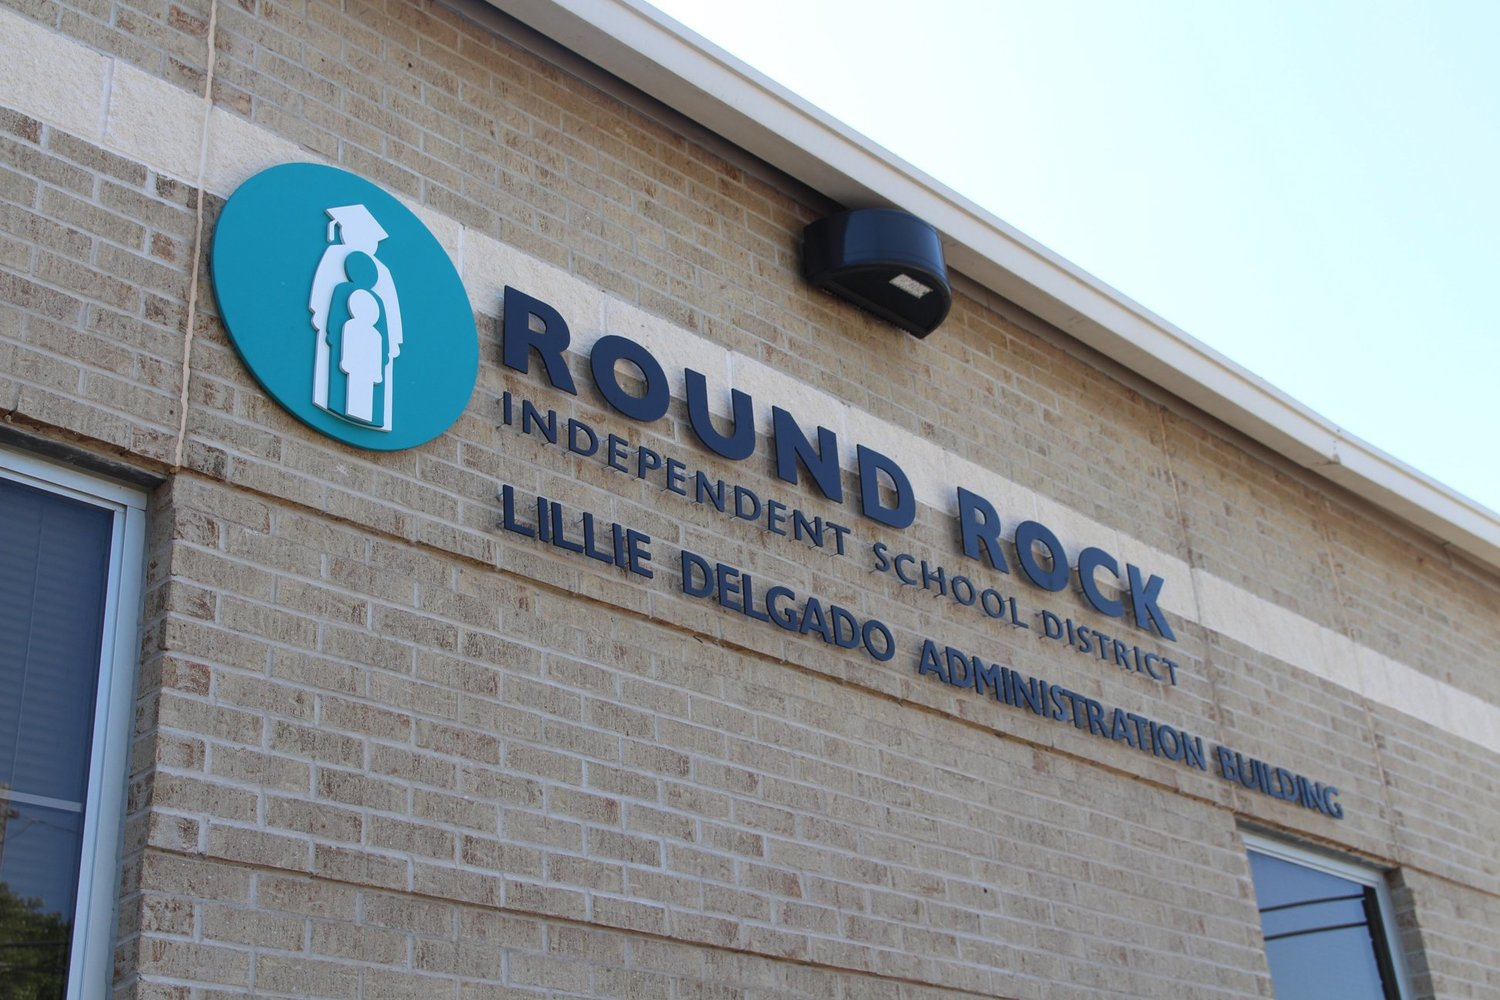 The Round Rock ISD Lillie Delgado Administration Building at 1311 Round Rock Ave. in Round Rock.